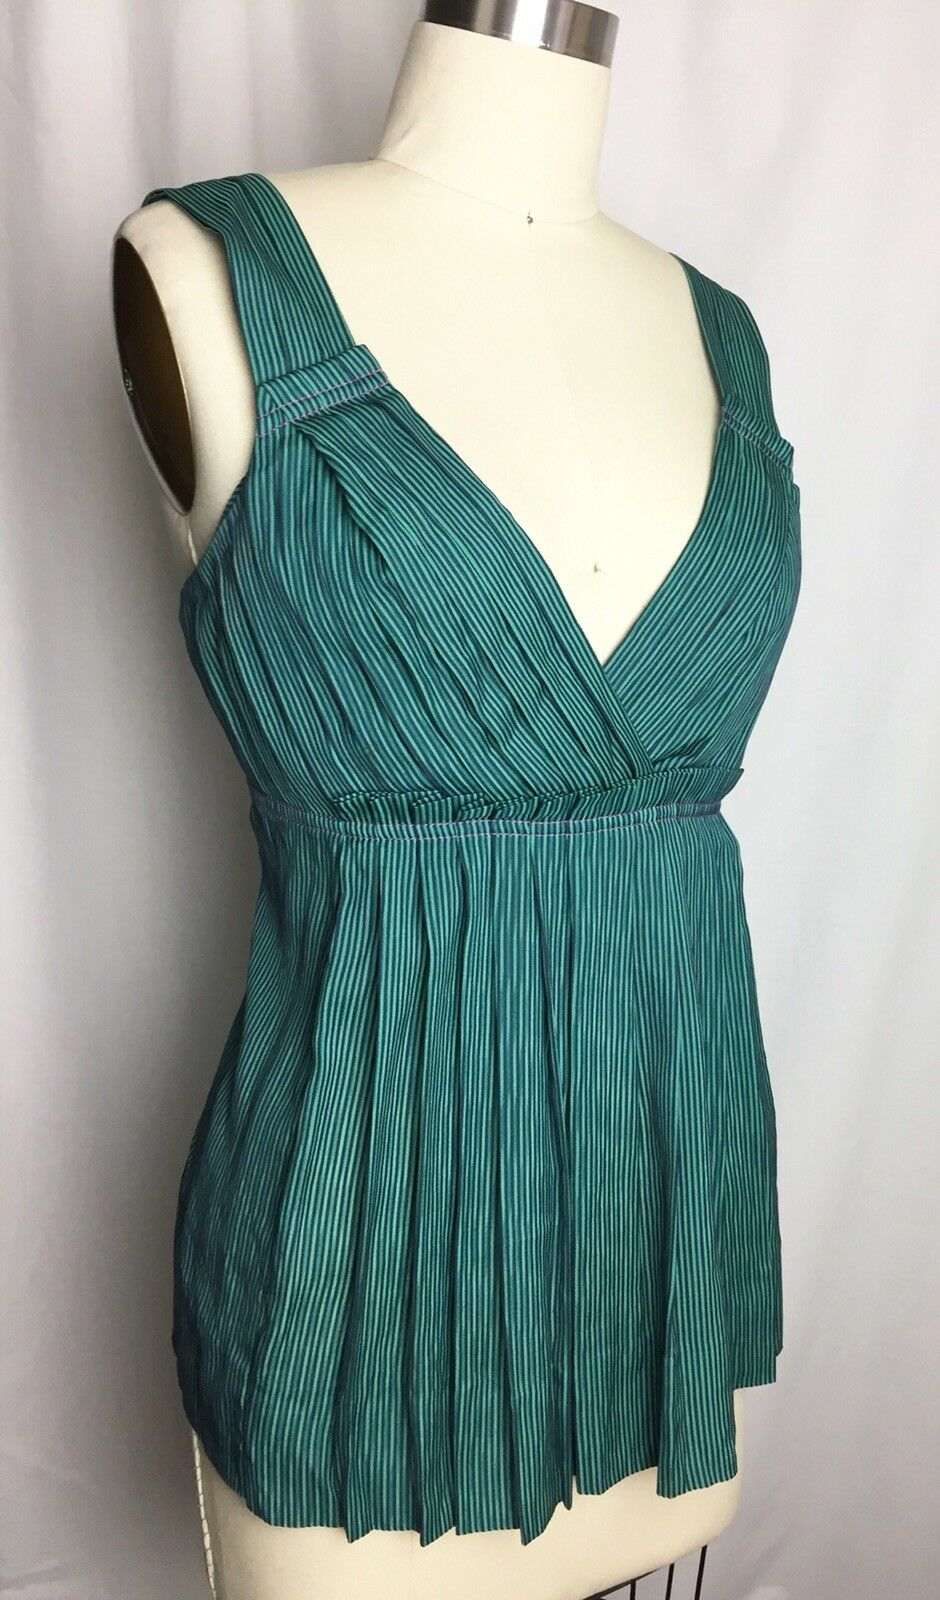 Marc MARC JACOBS SILK Green Navy Striped Pleated Blouse Top Shirt Small